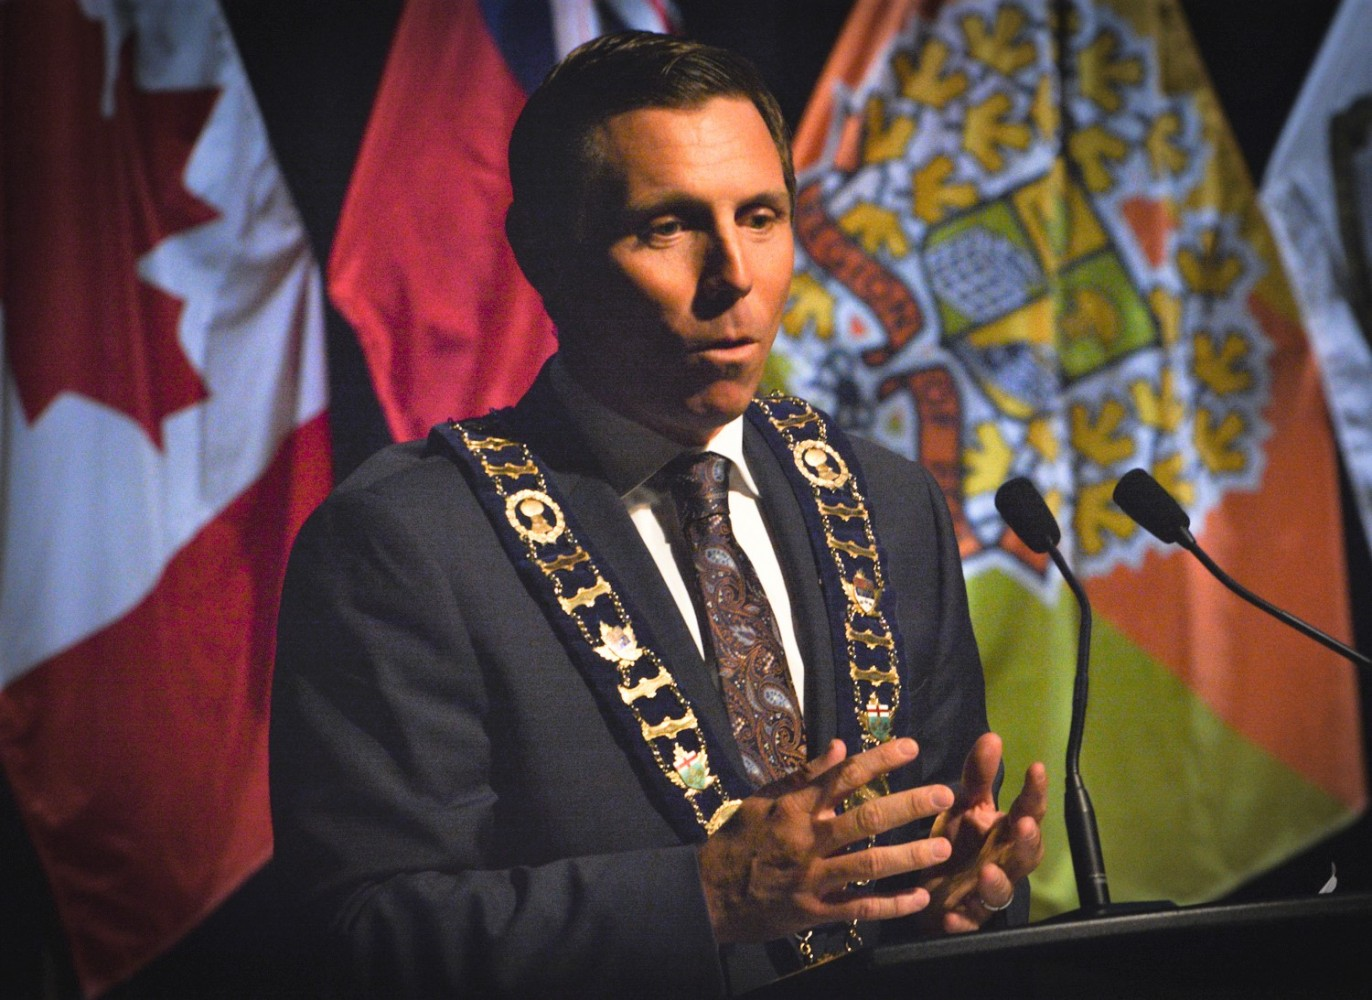 Brampton councillors raise red flags after man with ties to Patrick Brown handed consultant's job for proposed Municipal Development Corporation